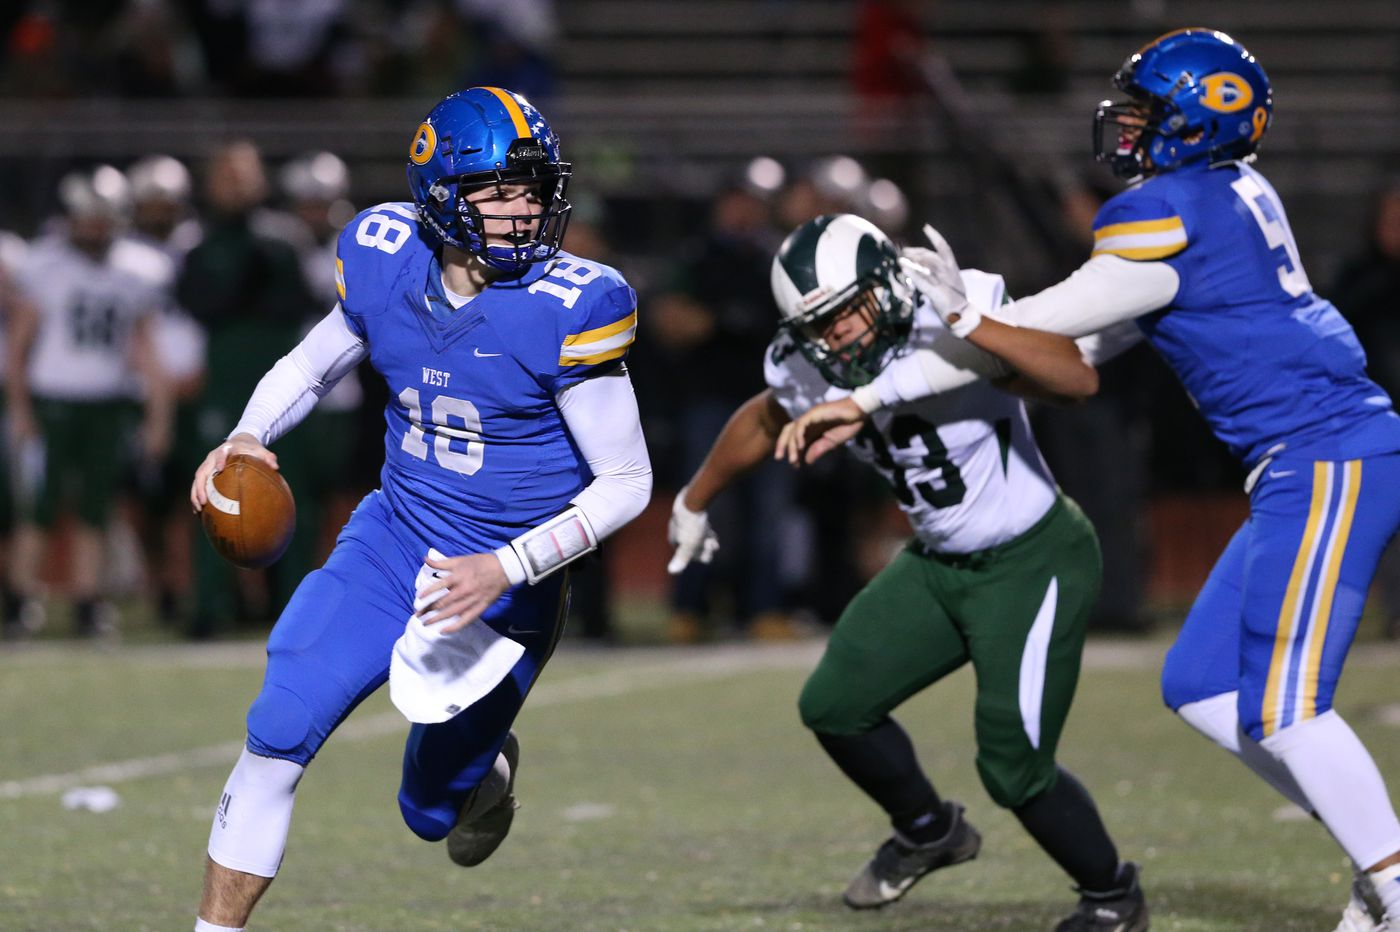 All-Southeastern Pa. football: Downingtown West's Will Howard is player of year